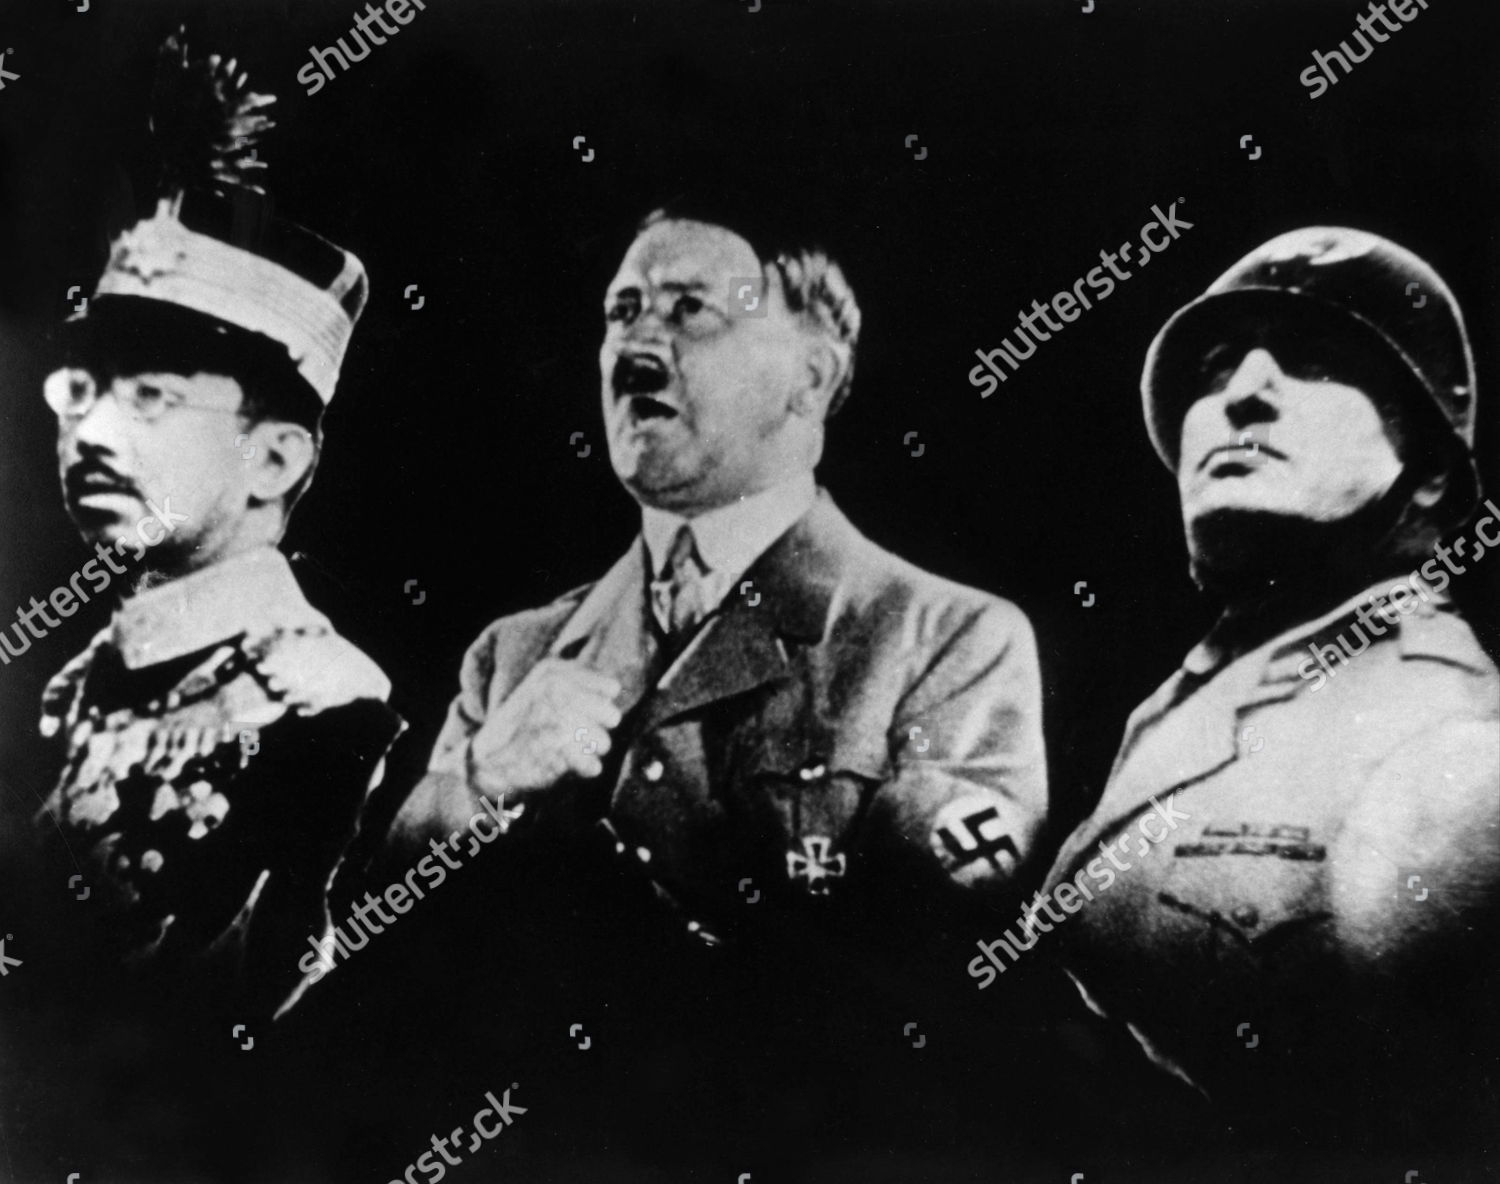 Adolf hitler and benito mussolini apologise, can